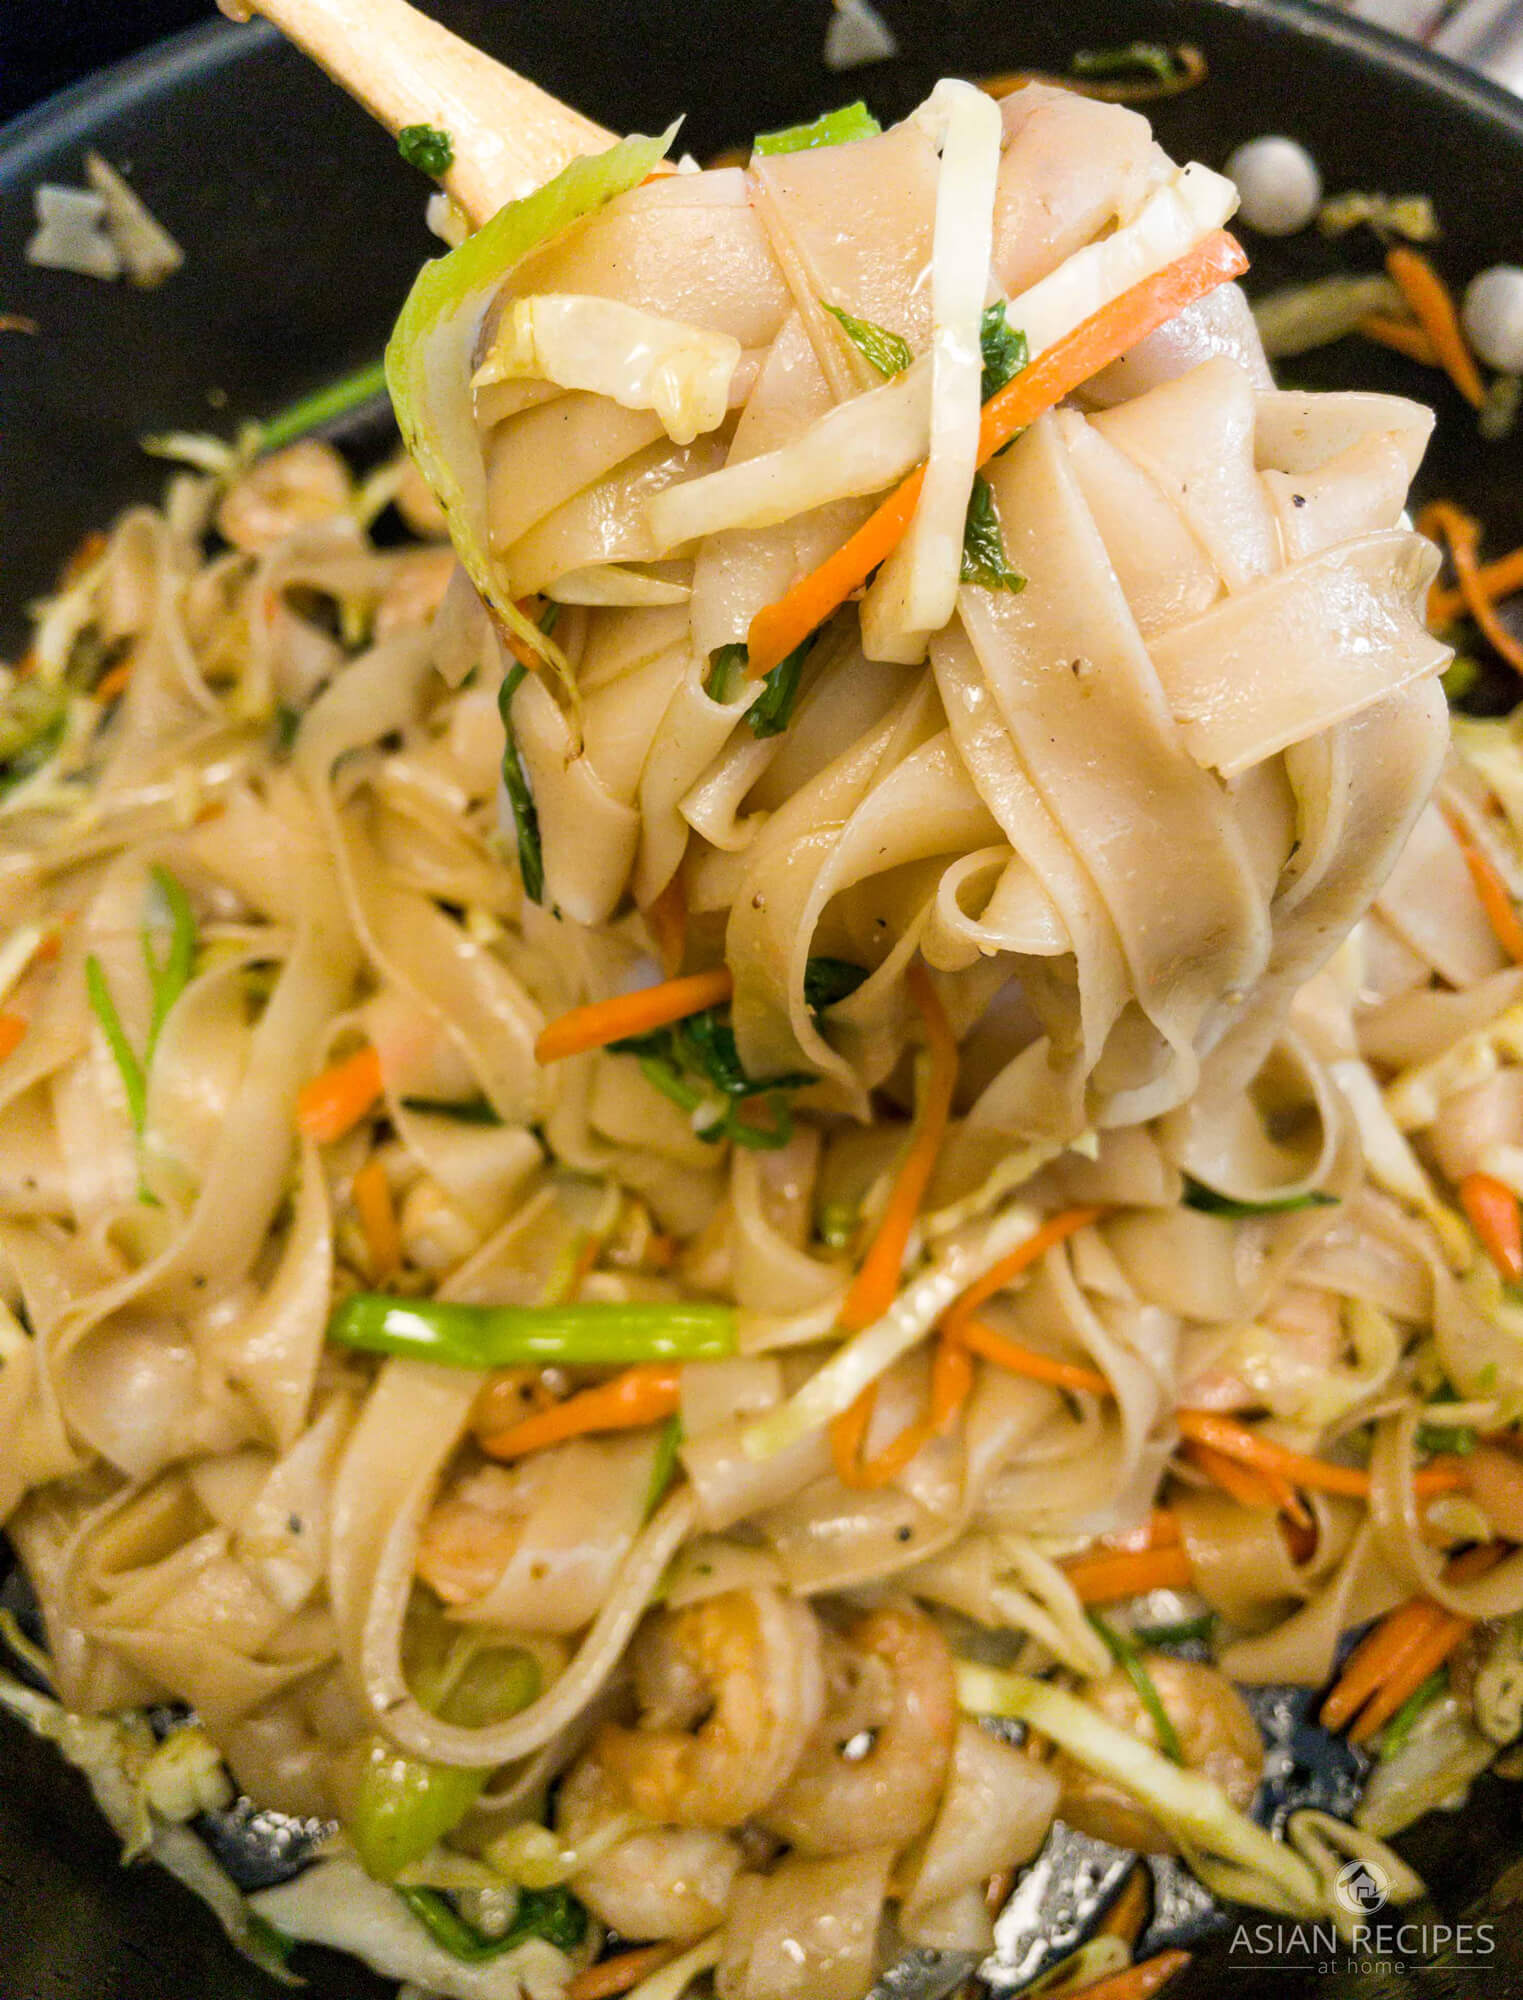 This easy stir-fried rice noodle recipe is bursting with Asian flavors and delicious shrimp.